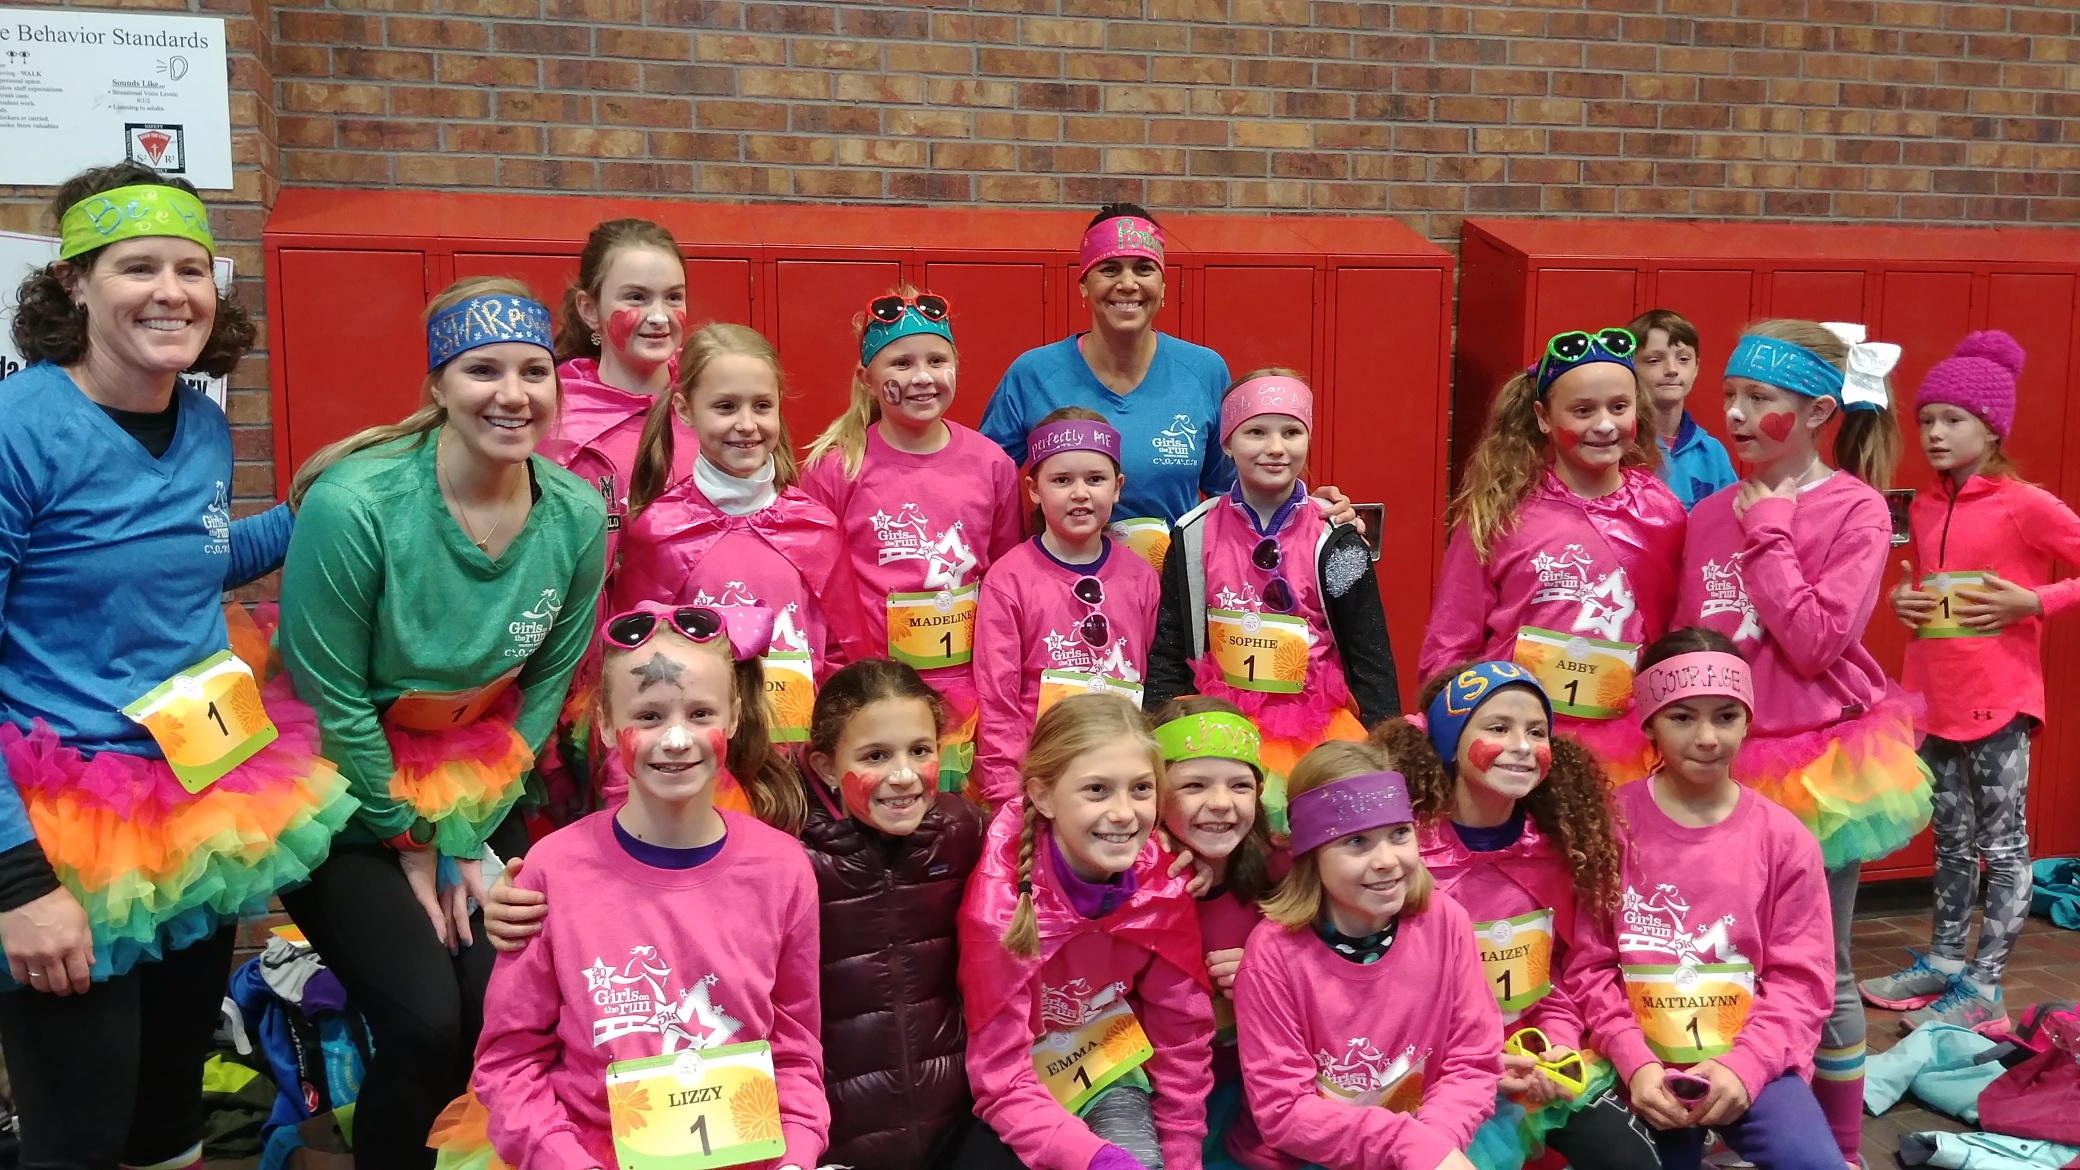 GIRLS ON THE RUN EVENT A HUGE SUCCESS